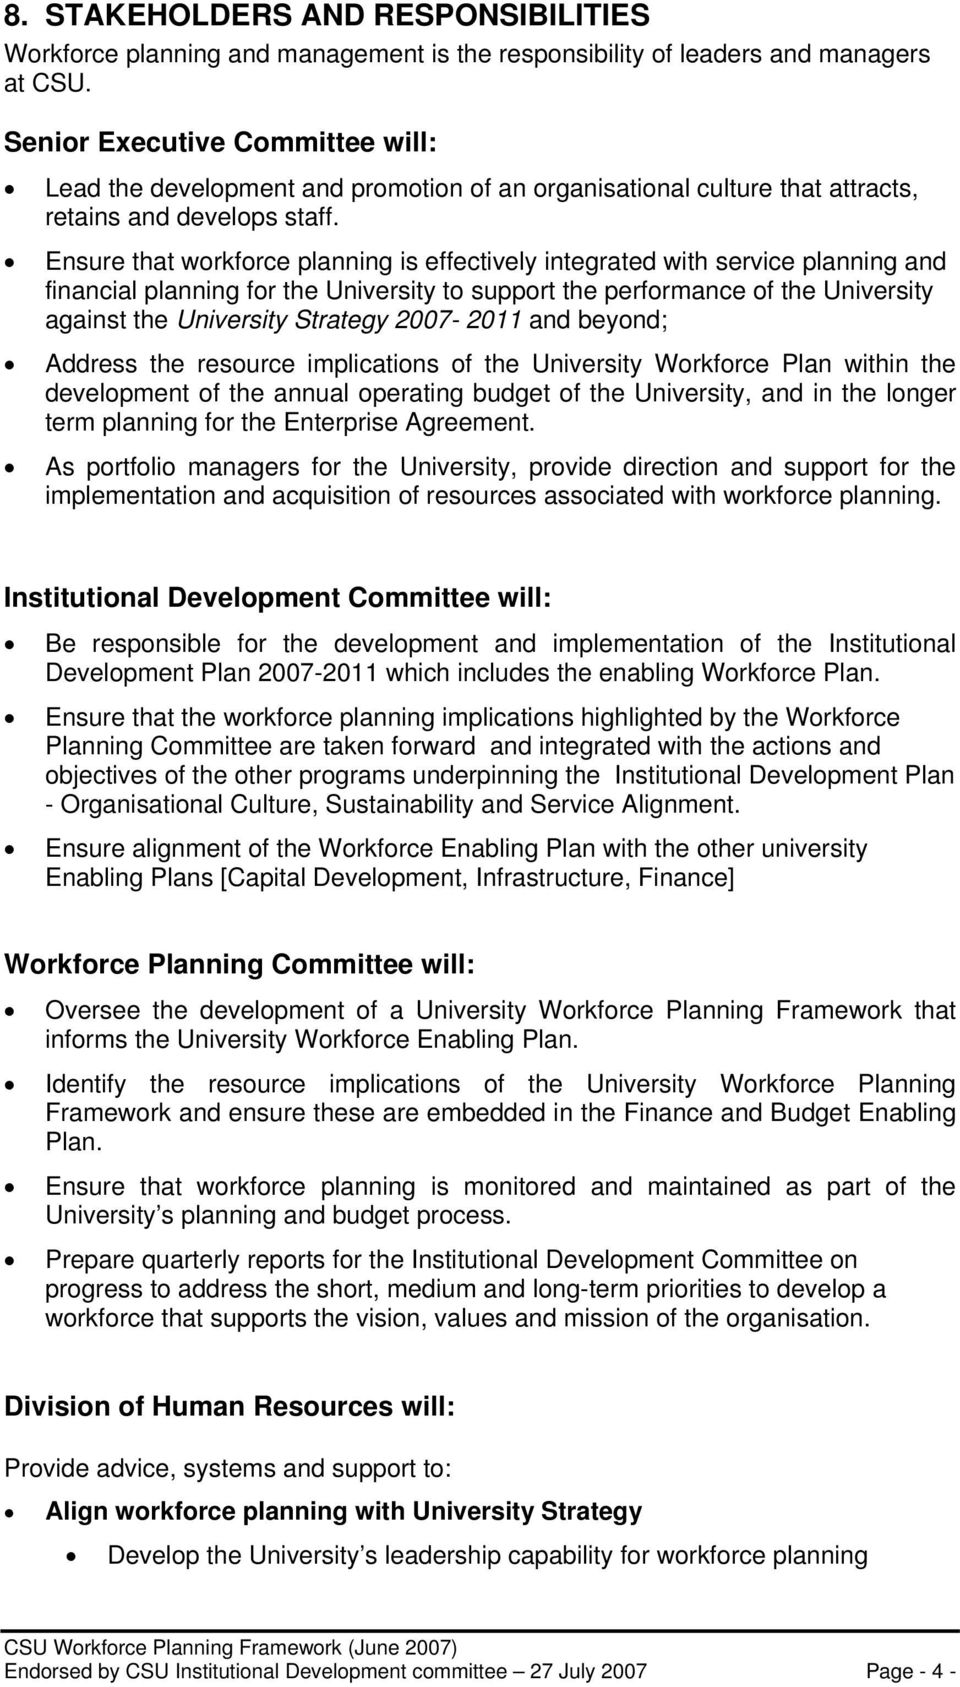 Ensure that workforce planning is effectively integrated with service planning and financial planning for the University to support the performance of the University against the University Strategy